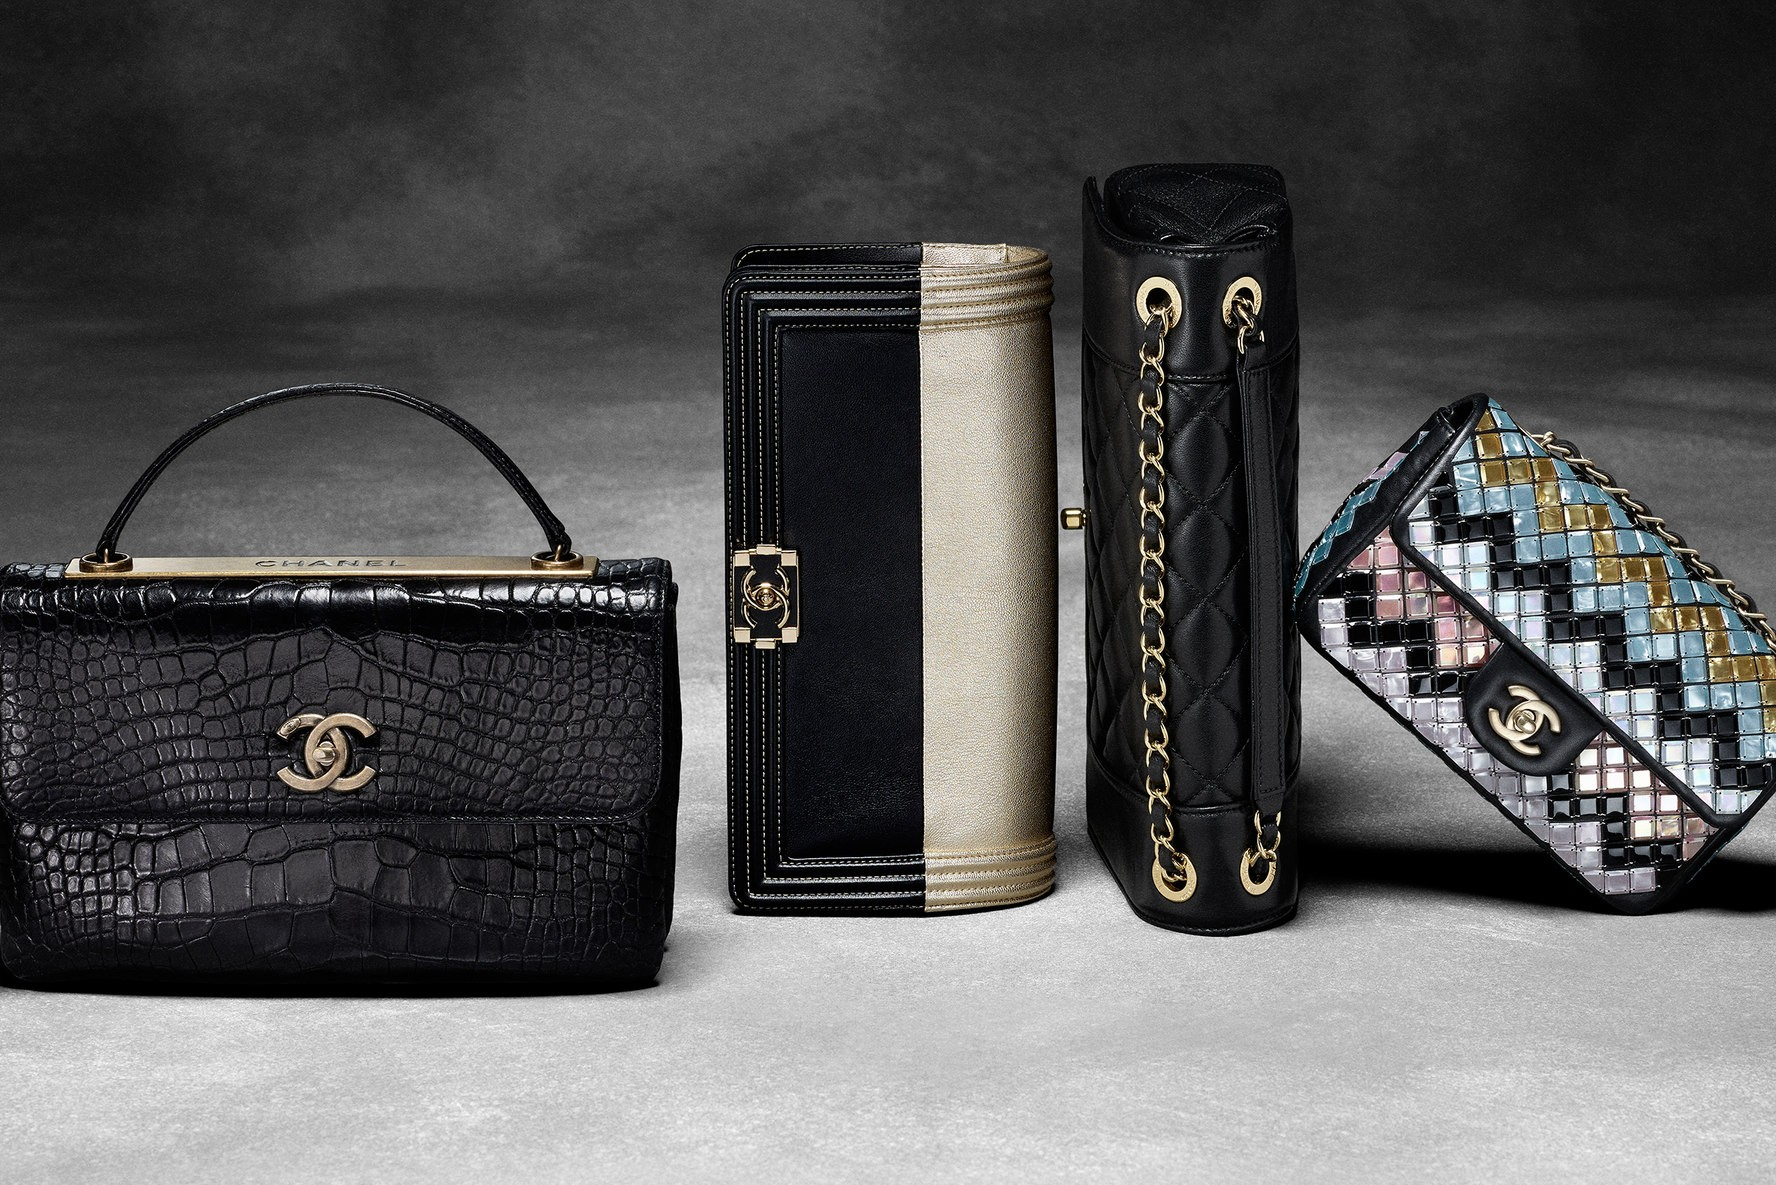 f151f56f1157 Chanel Fall Winter 2015 Act 2 Brasserie Bag Collection